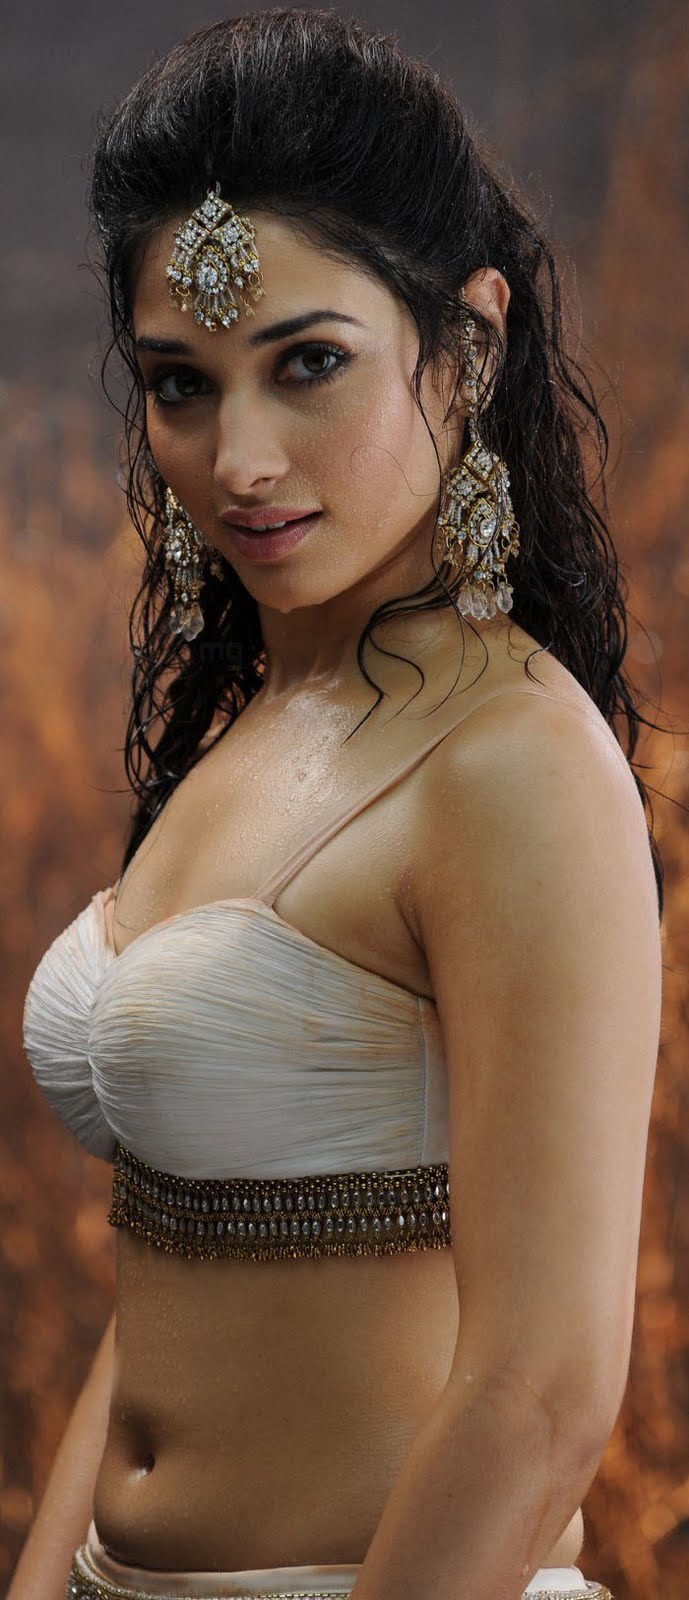 With you tamanna hot navel you were